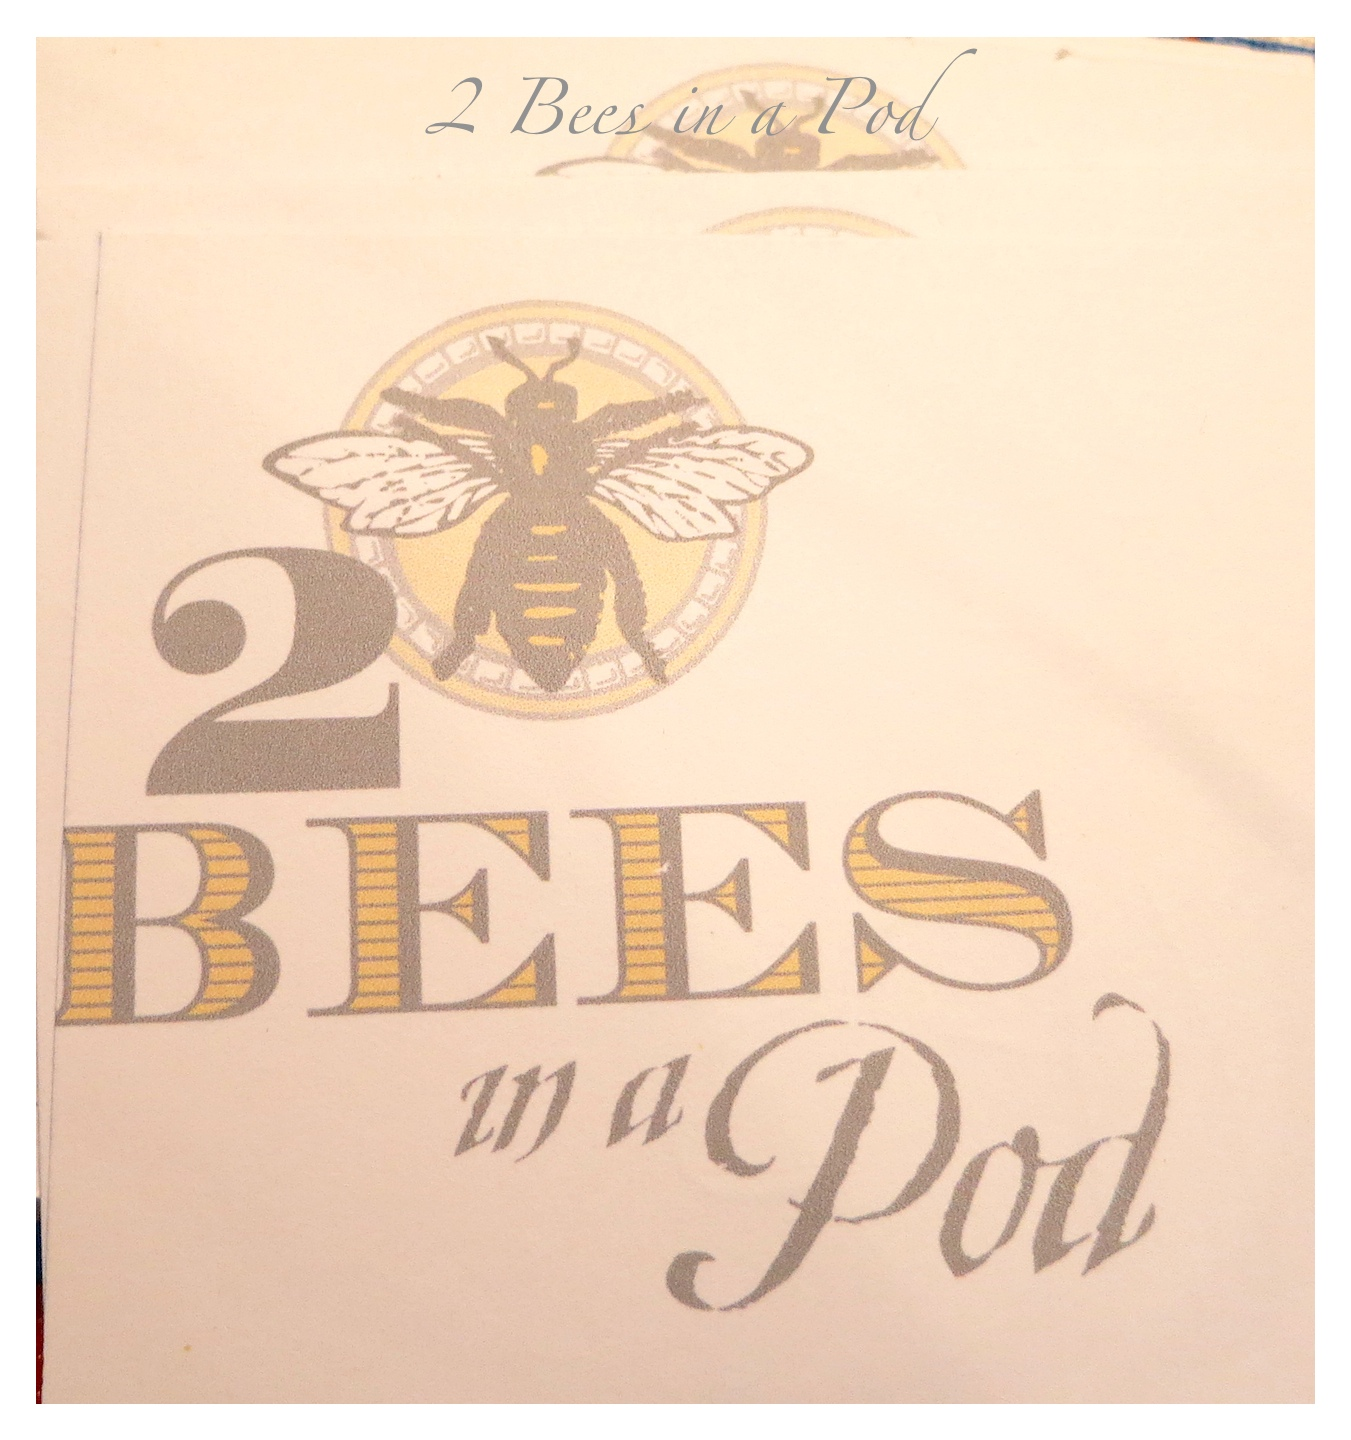 Big Announcement from 2 Bees in a Pod - We have opened booth space at Treasure Hunt in Powder Springs Georgia!